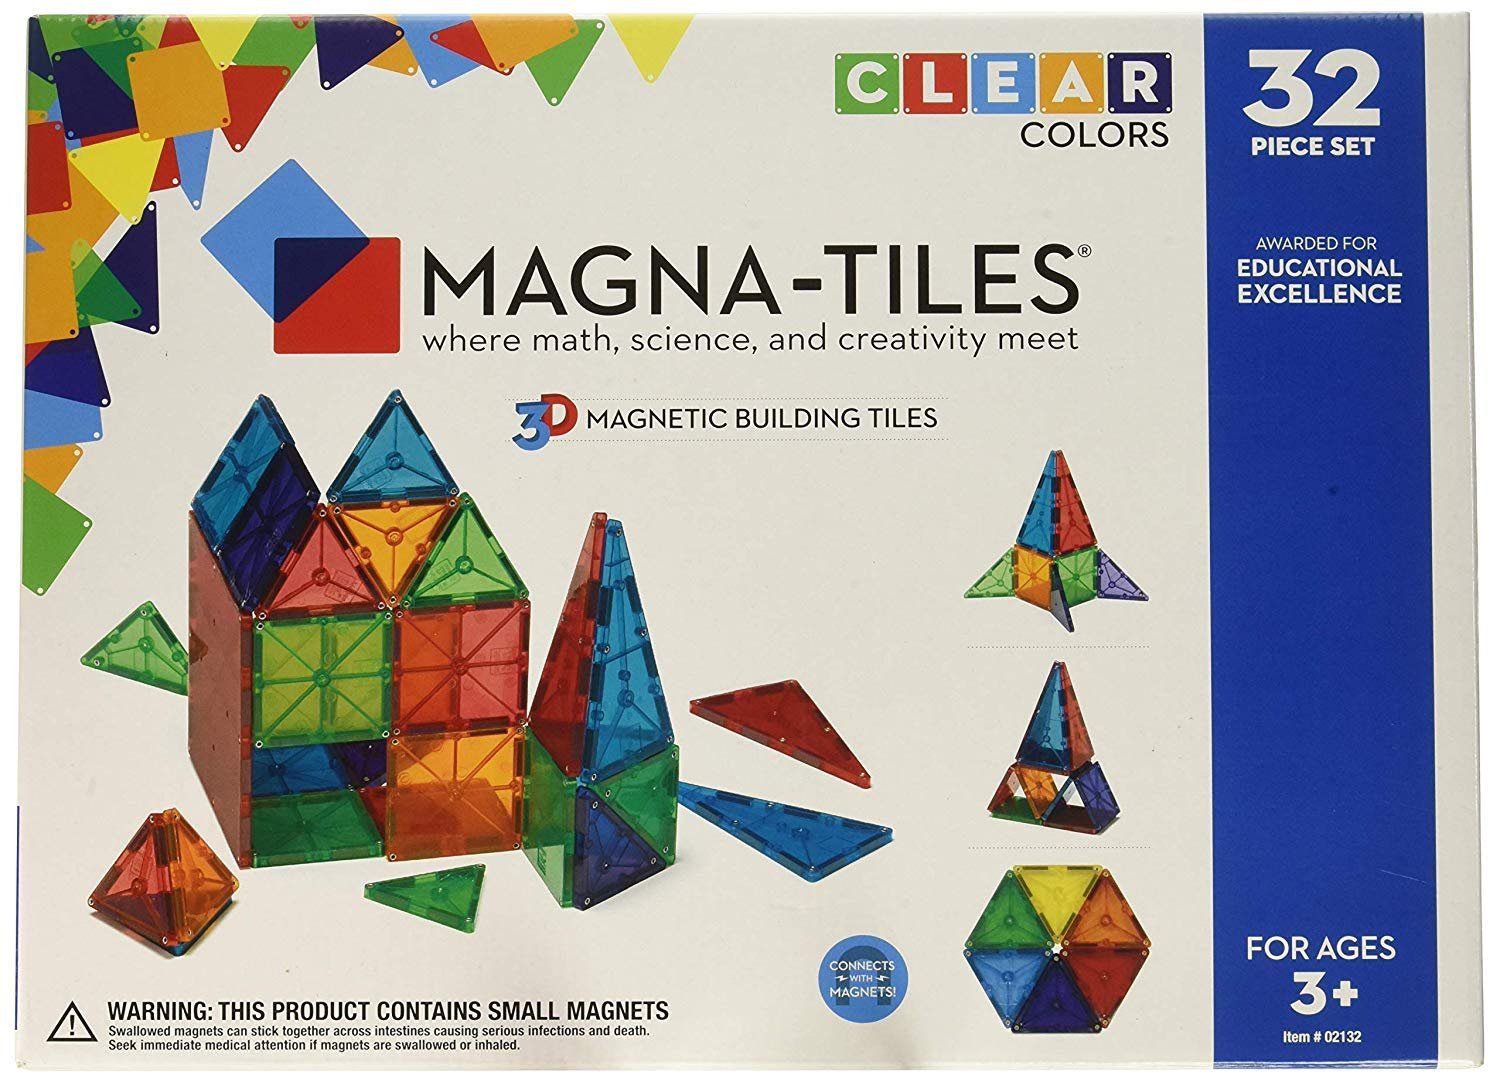 Magna-Tiles 32-Piece Clear Colors Set - The Original, Award-Winning Magnetic Building Tiles - Creativity and Educational - STEM Approved Bundled 8-Piece Rectangles Expansion Set - The by Magna-Tiles (Image #2)